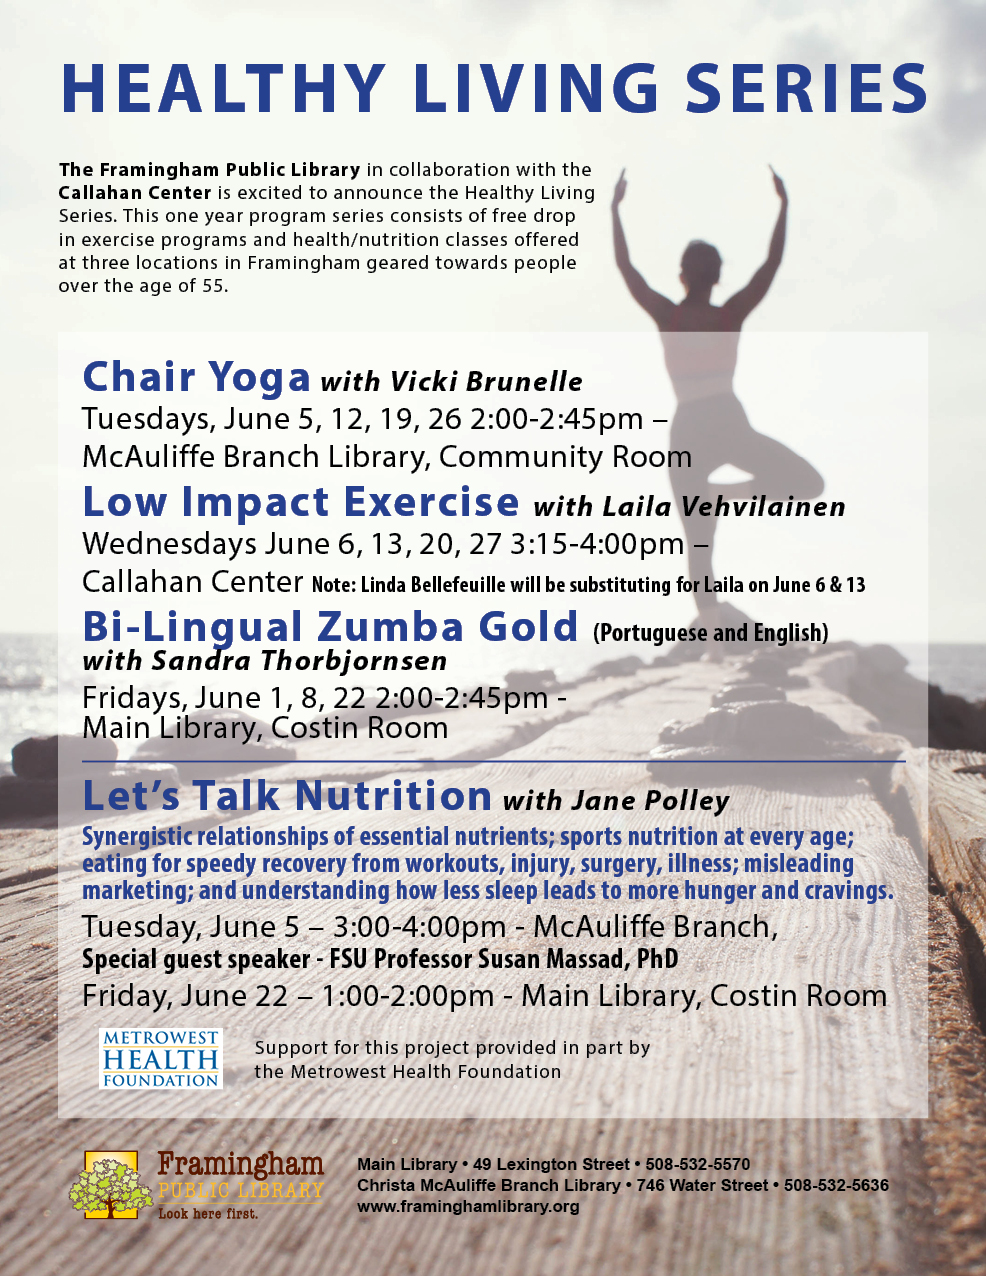 poster of Healthy Living Series, June 2018